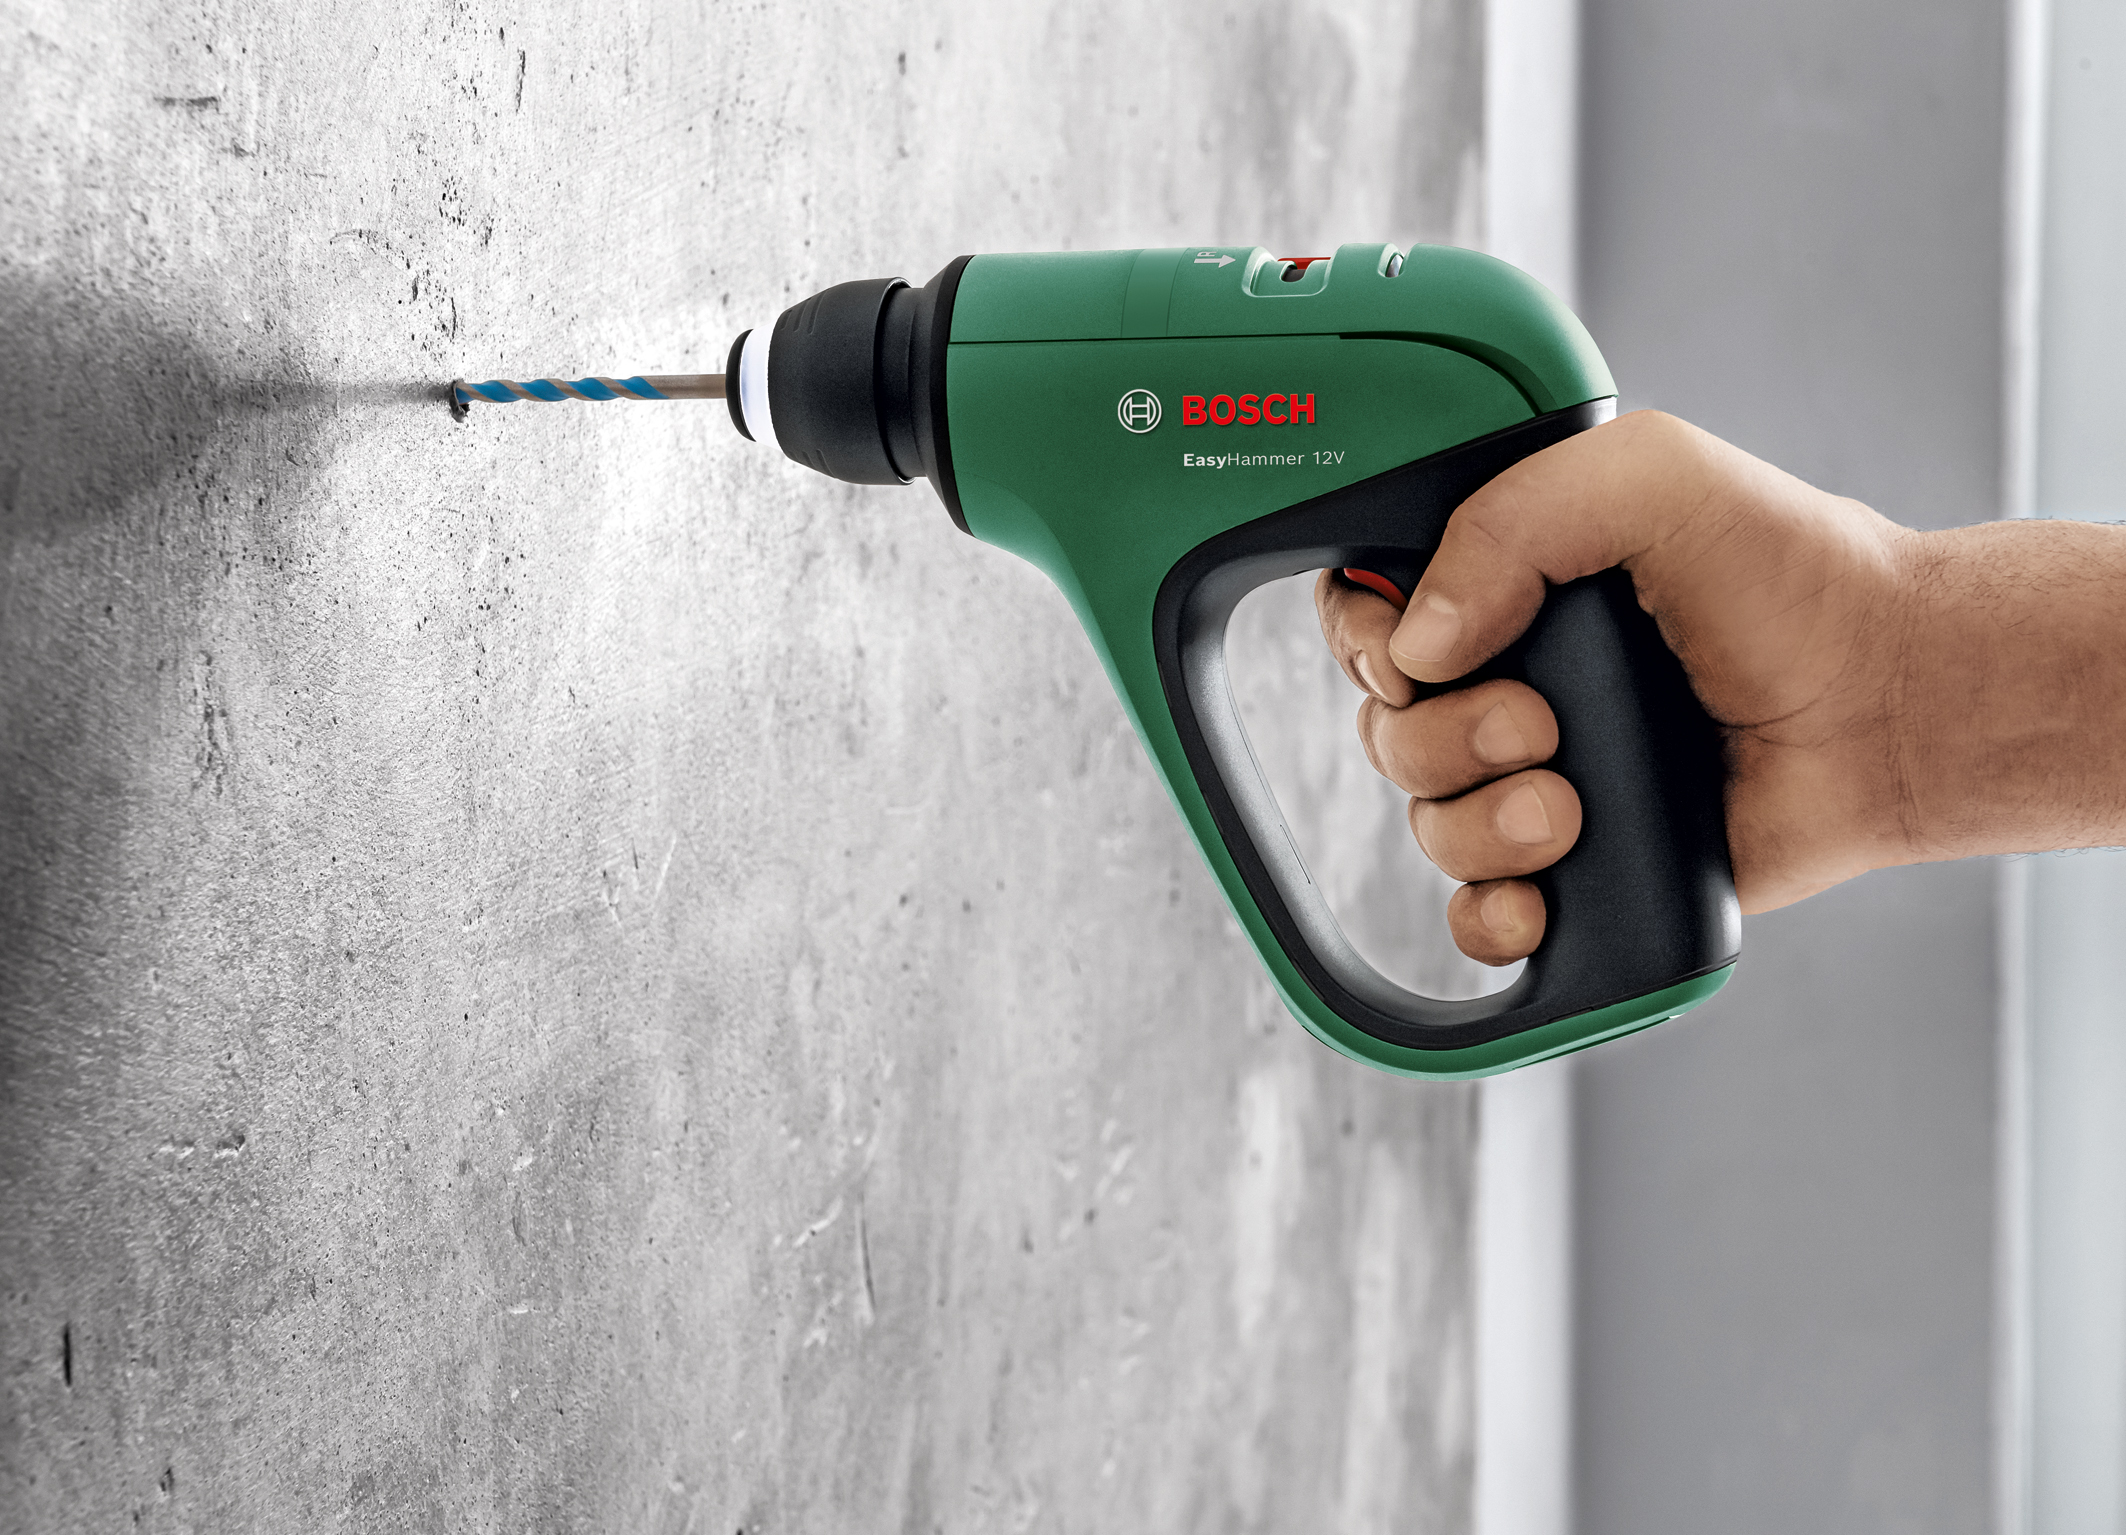 Pneumatic hammer mechanism for quick and easy drilling in concrete: Bosch EasyHammer 12V for many materials